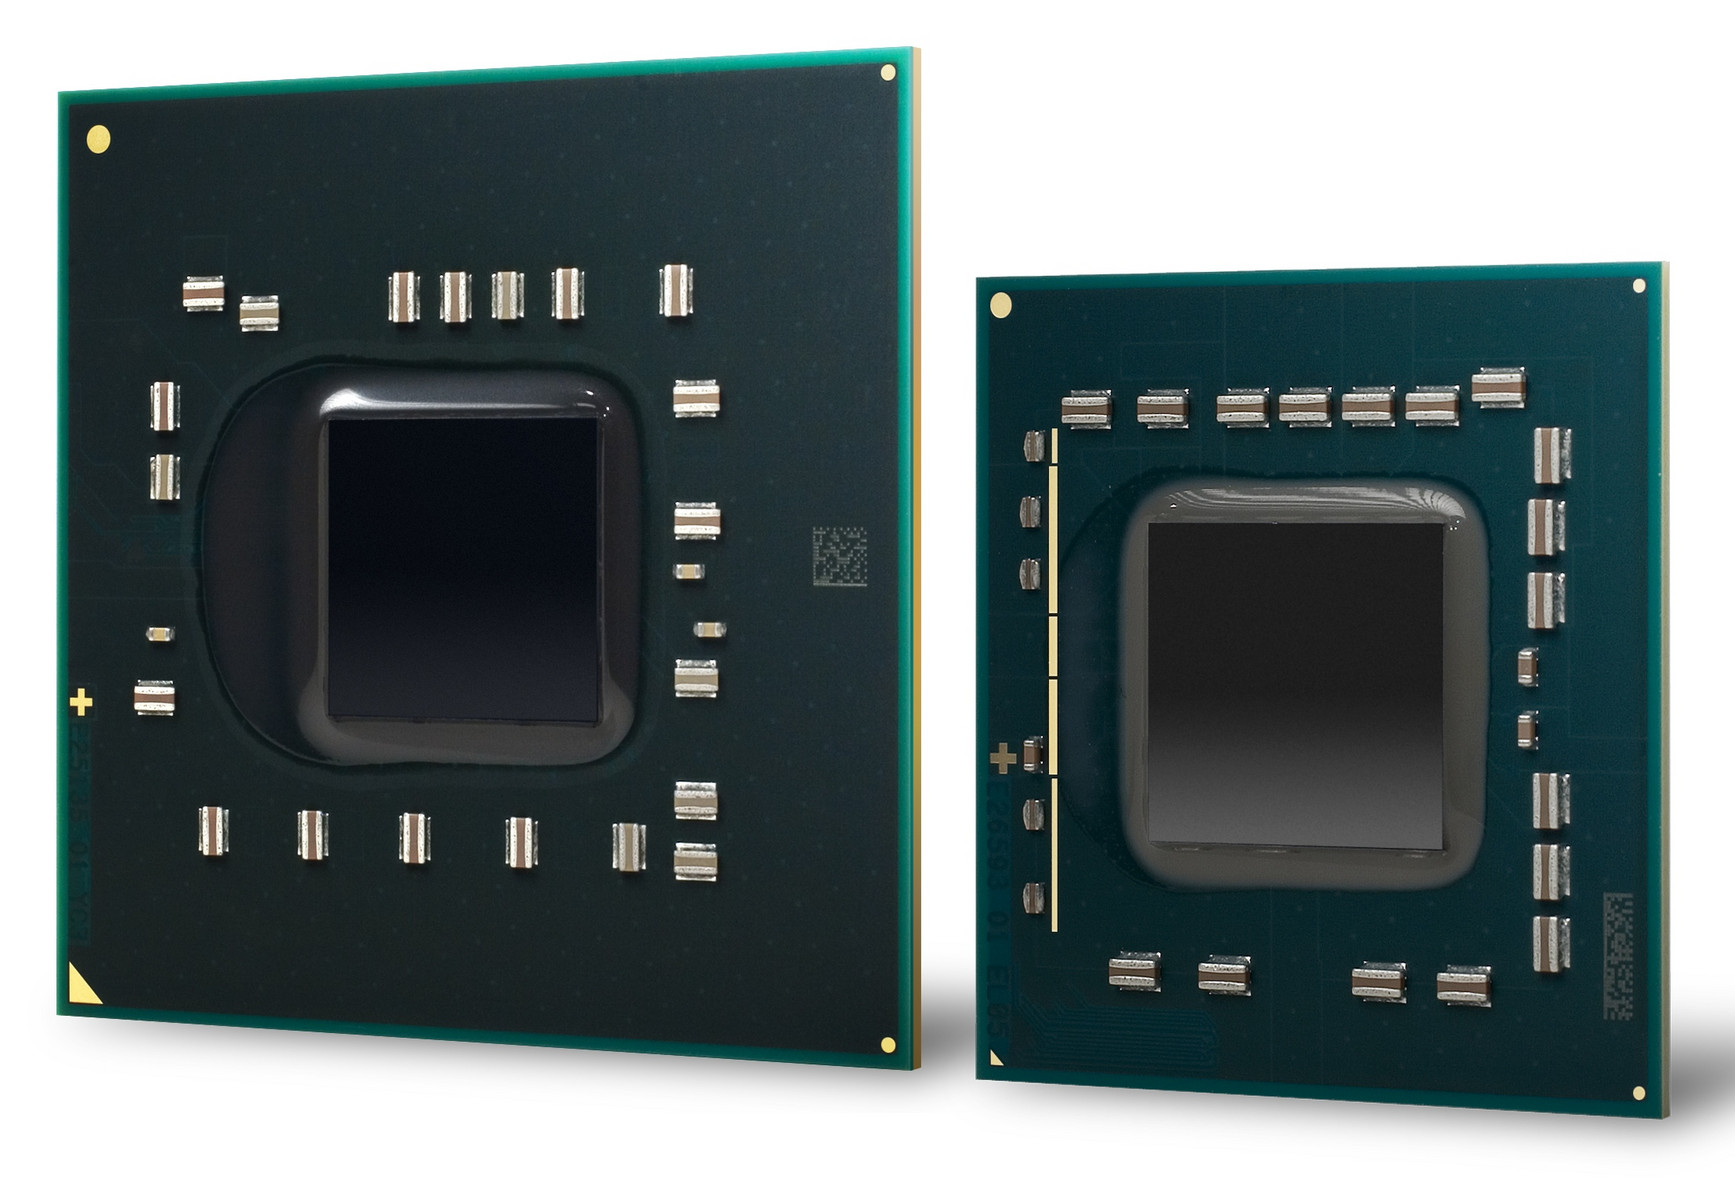 Intel Graphics Media Accelerator GMA X3100 Vs 4500M